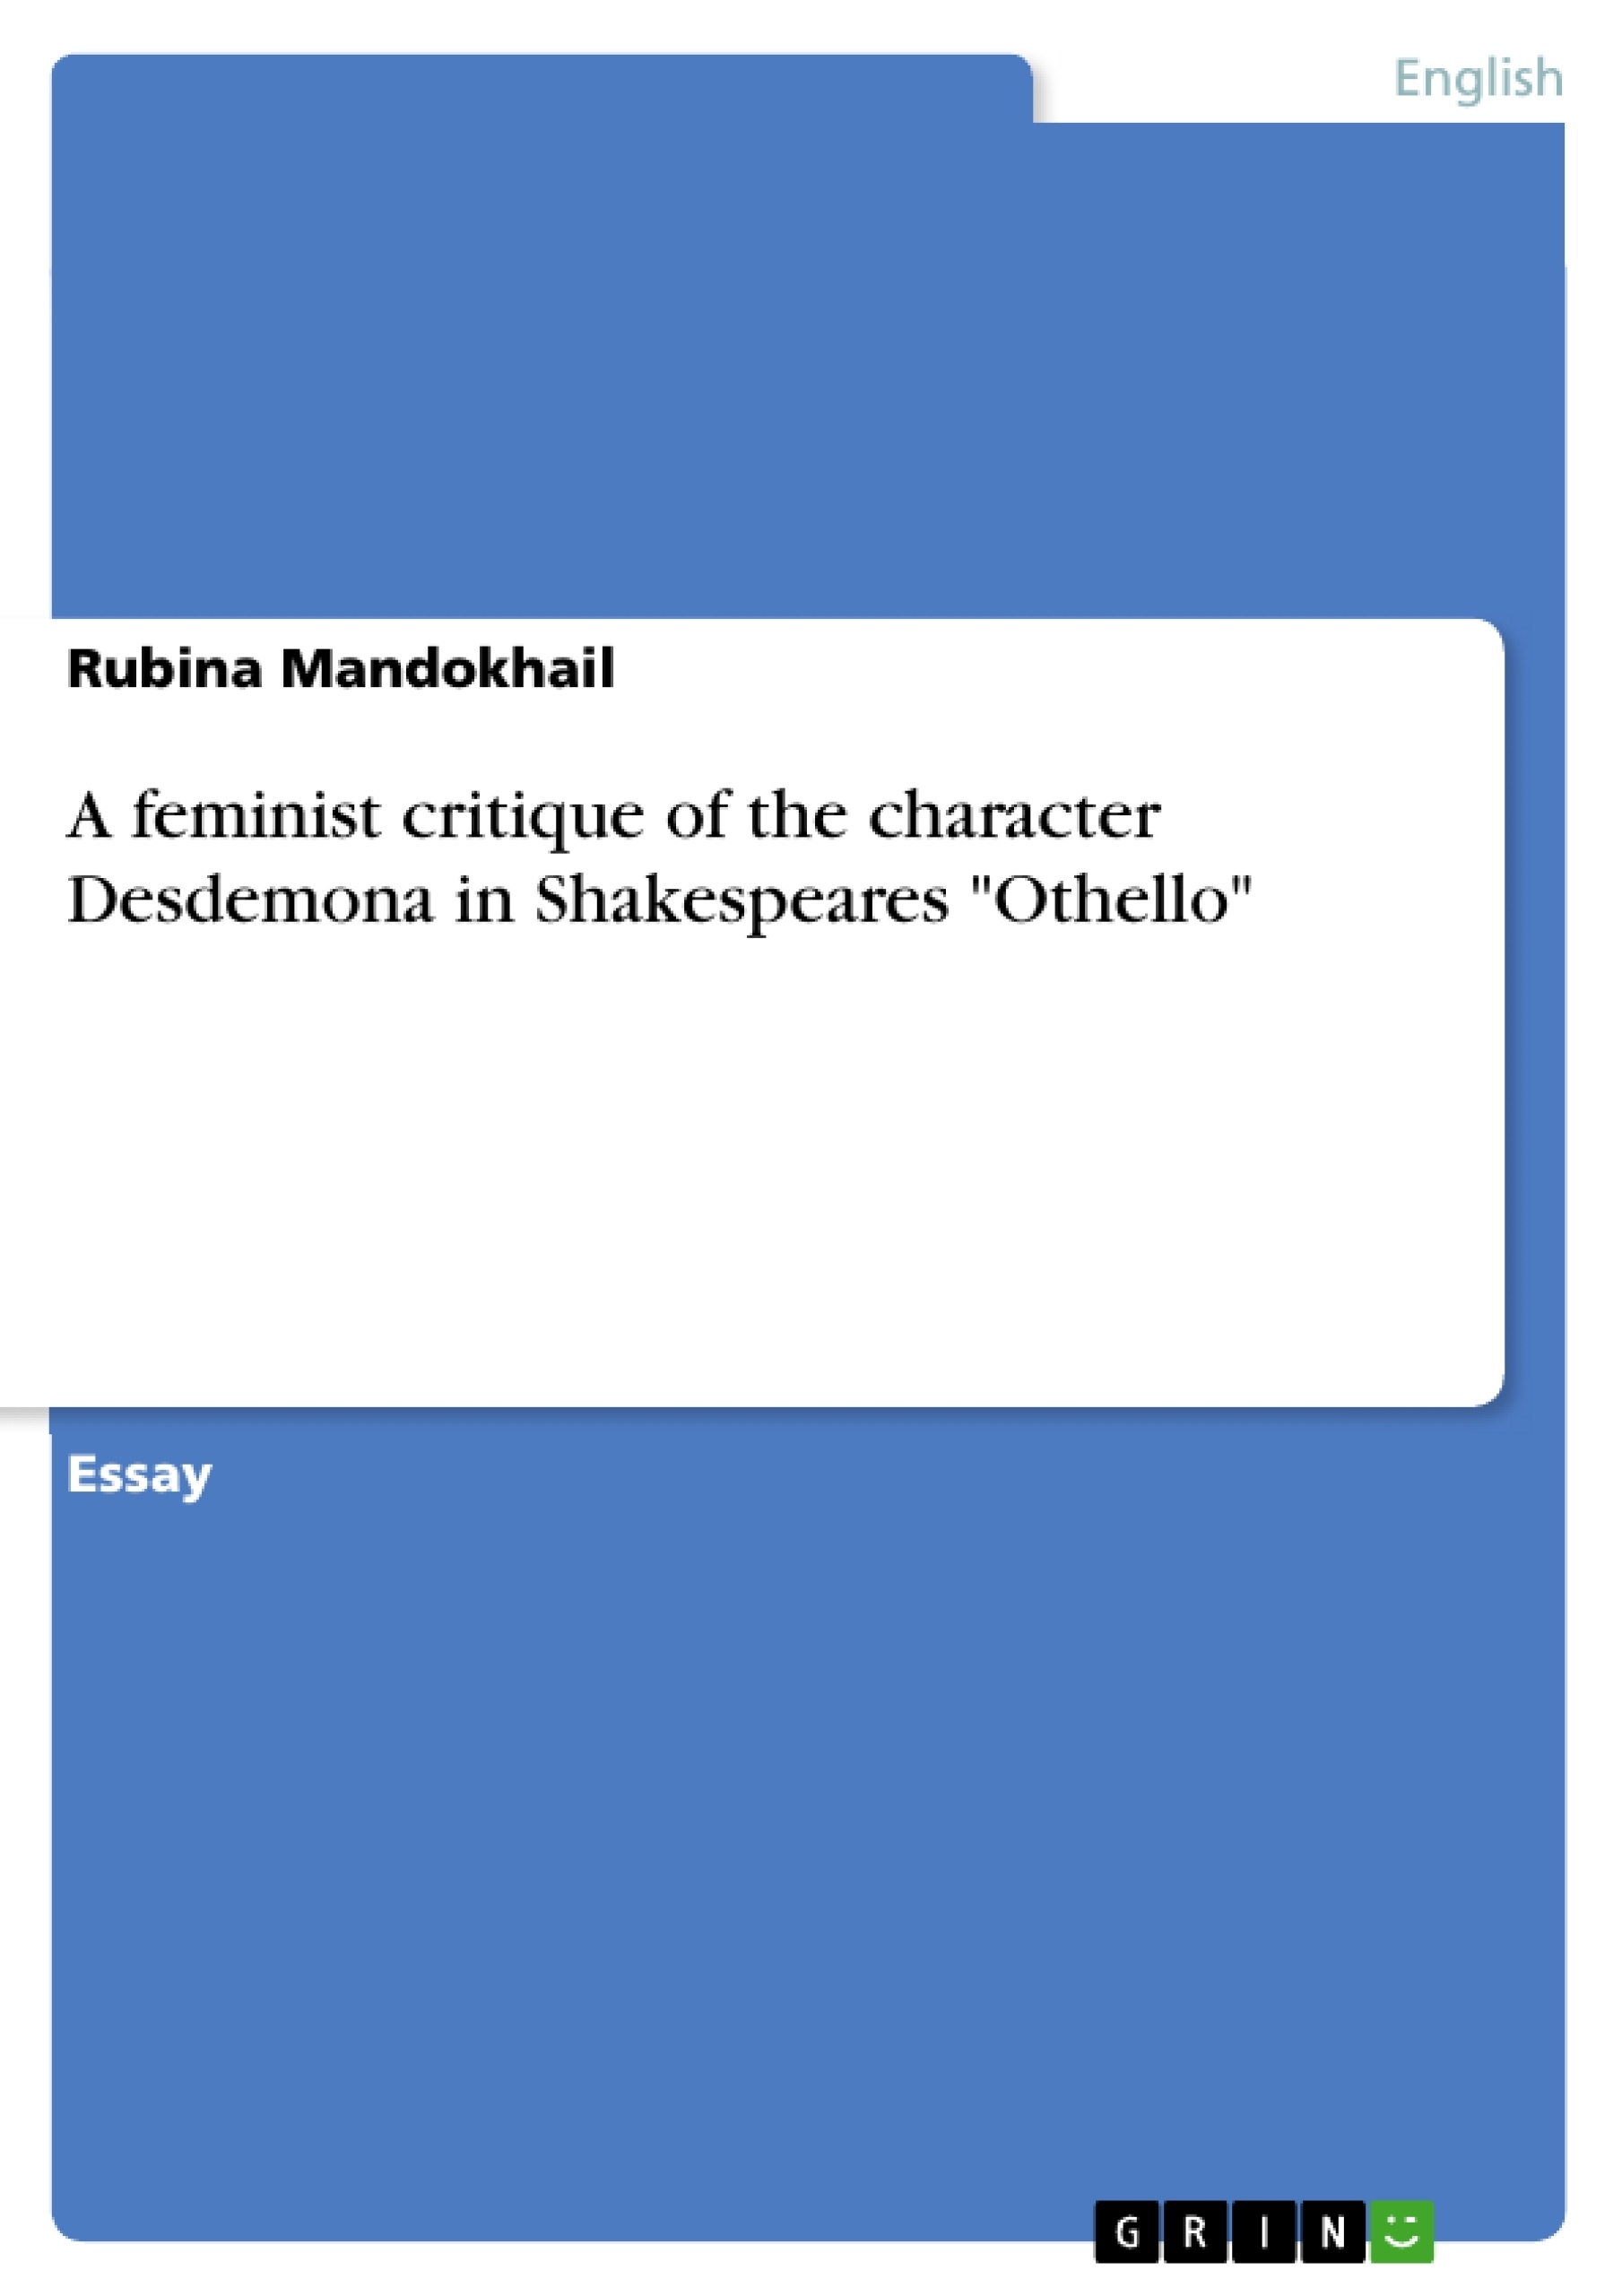 a feminist critique of the character desdemona in shakespeares a feminist critique of the character desdemona in shakespeares publish your master s thesis bachelor s thesis essay or term paper